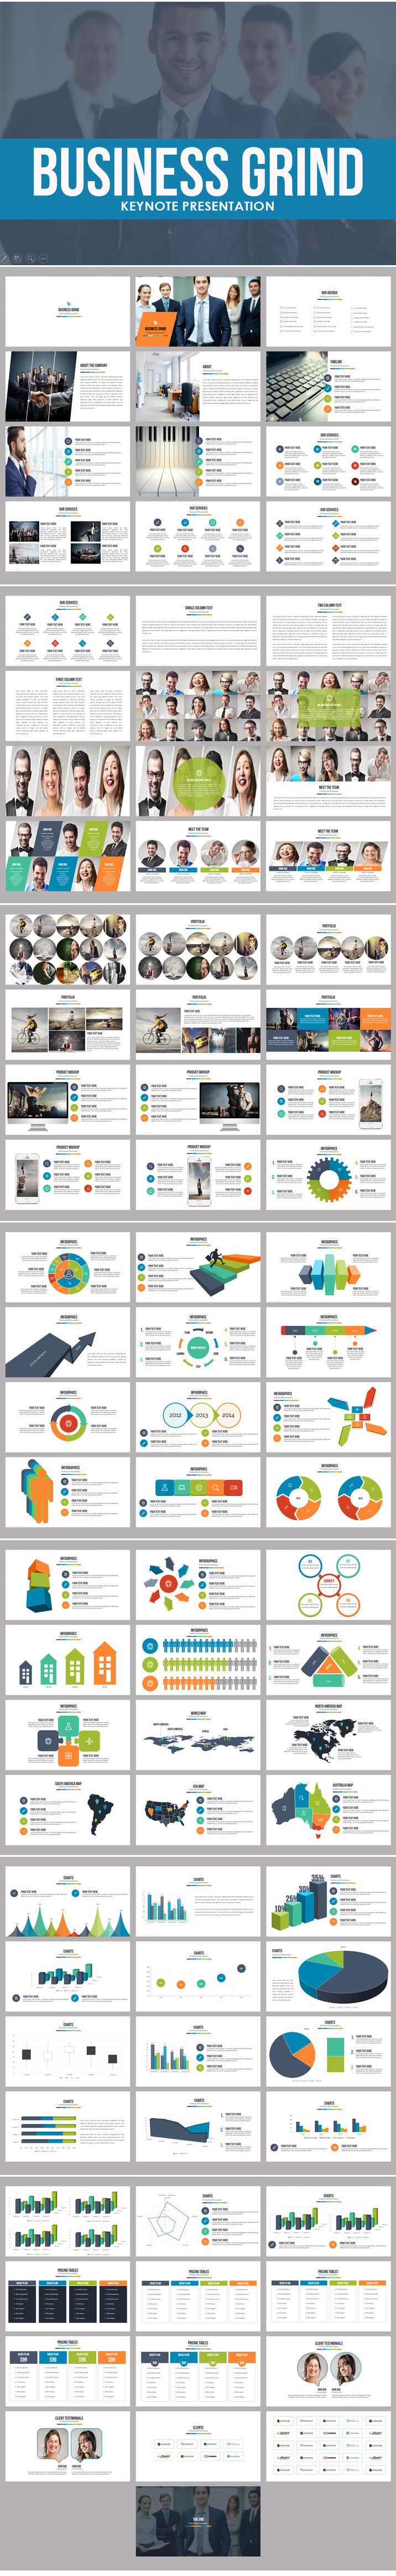 business_grind_keynote_template_by_creative_slides